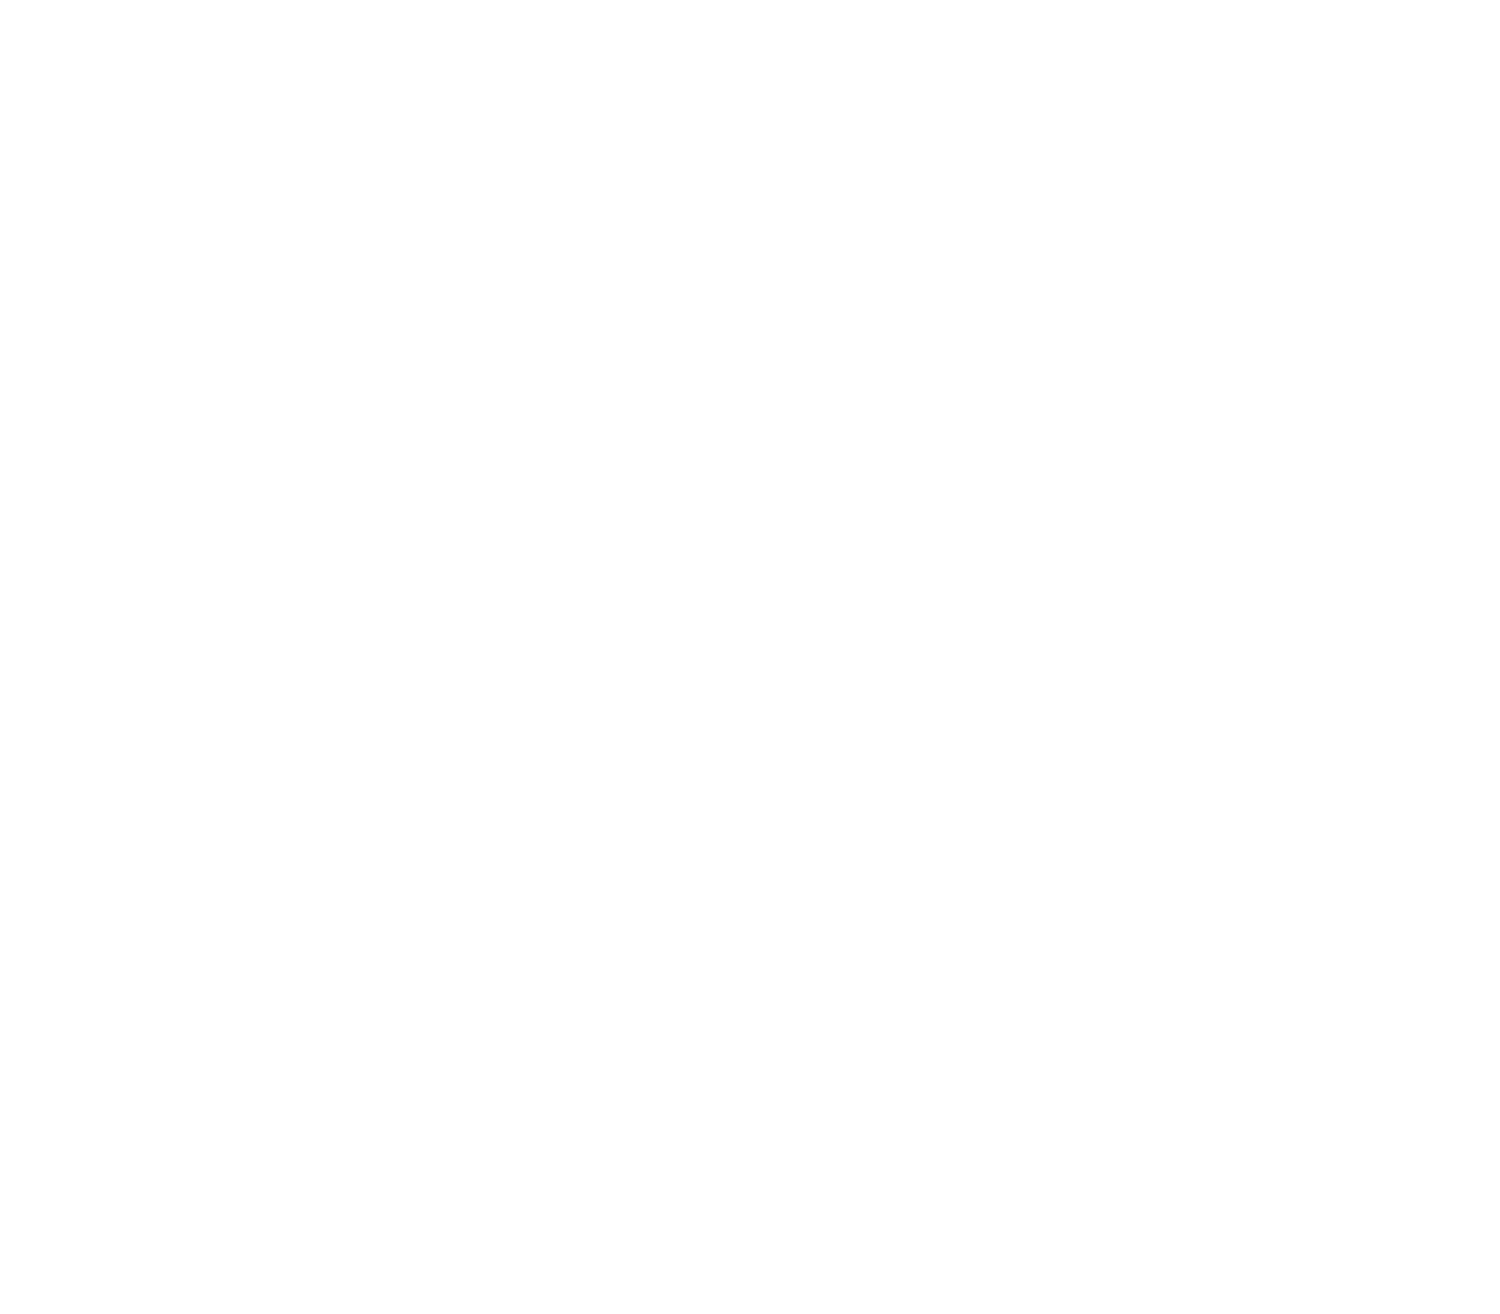 Go Hoop Day - Basketball's Global Holiday